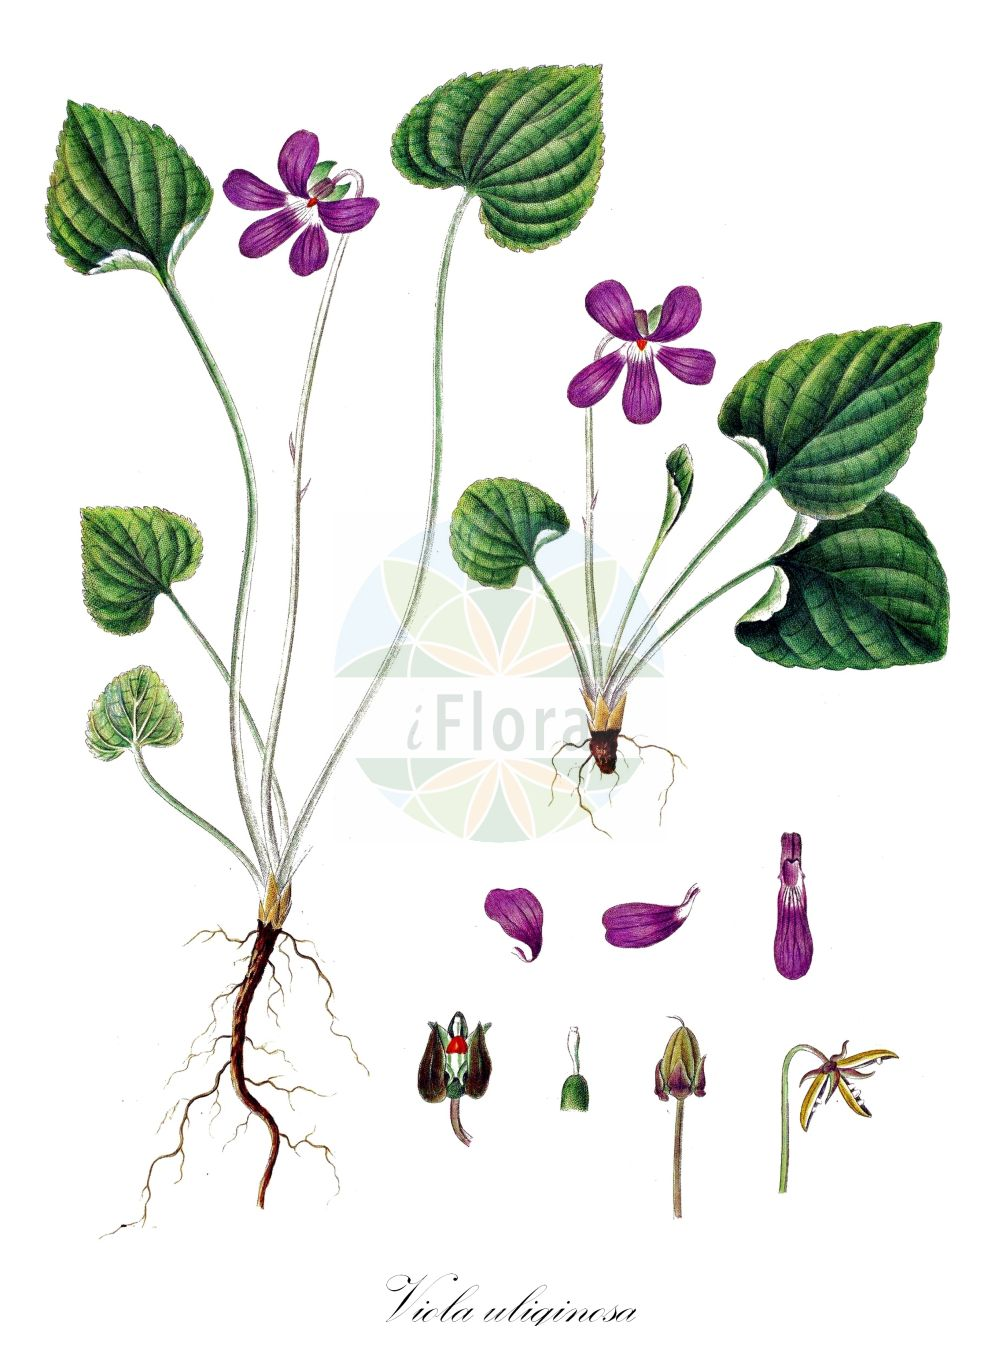 Historische Abbildung von Viola uliginosa (Moor-Veilchen - Baltic Violet). Das Bild zeigt Blatt, Bluete, Frucht und Same. ---- Historical Drawing of Viola uliginosa (Moor-Veilchen - Baltic Violet).The image is showing leaf, flower, fruit and seed. (Viola uliginosa,Moor-Veilchen,Baltic Violet,Viola,Veilchen,violet,Violaceae,Veilchengewaechse,Violet family,Blatt,Bluete,Frucht,Same,leaf,flower,fruit,seed,Oeder (1761-1883))